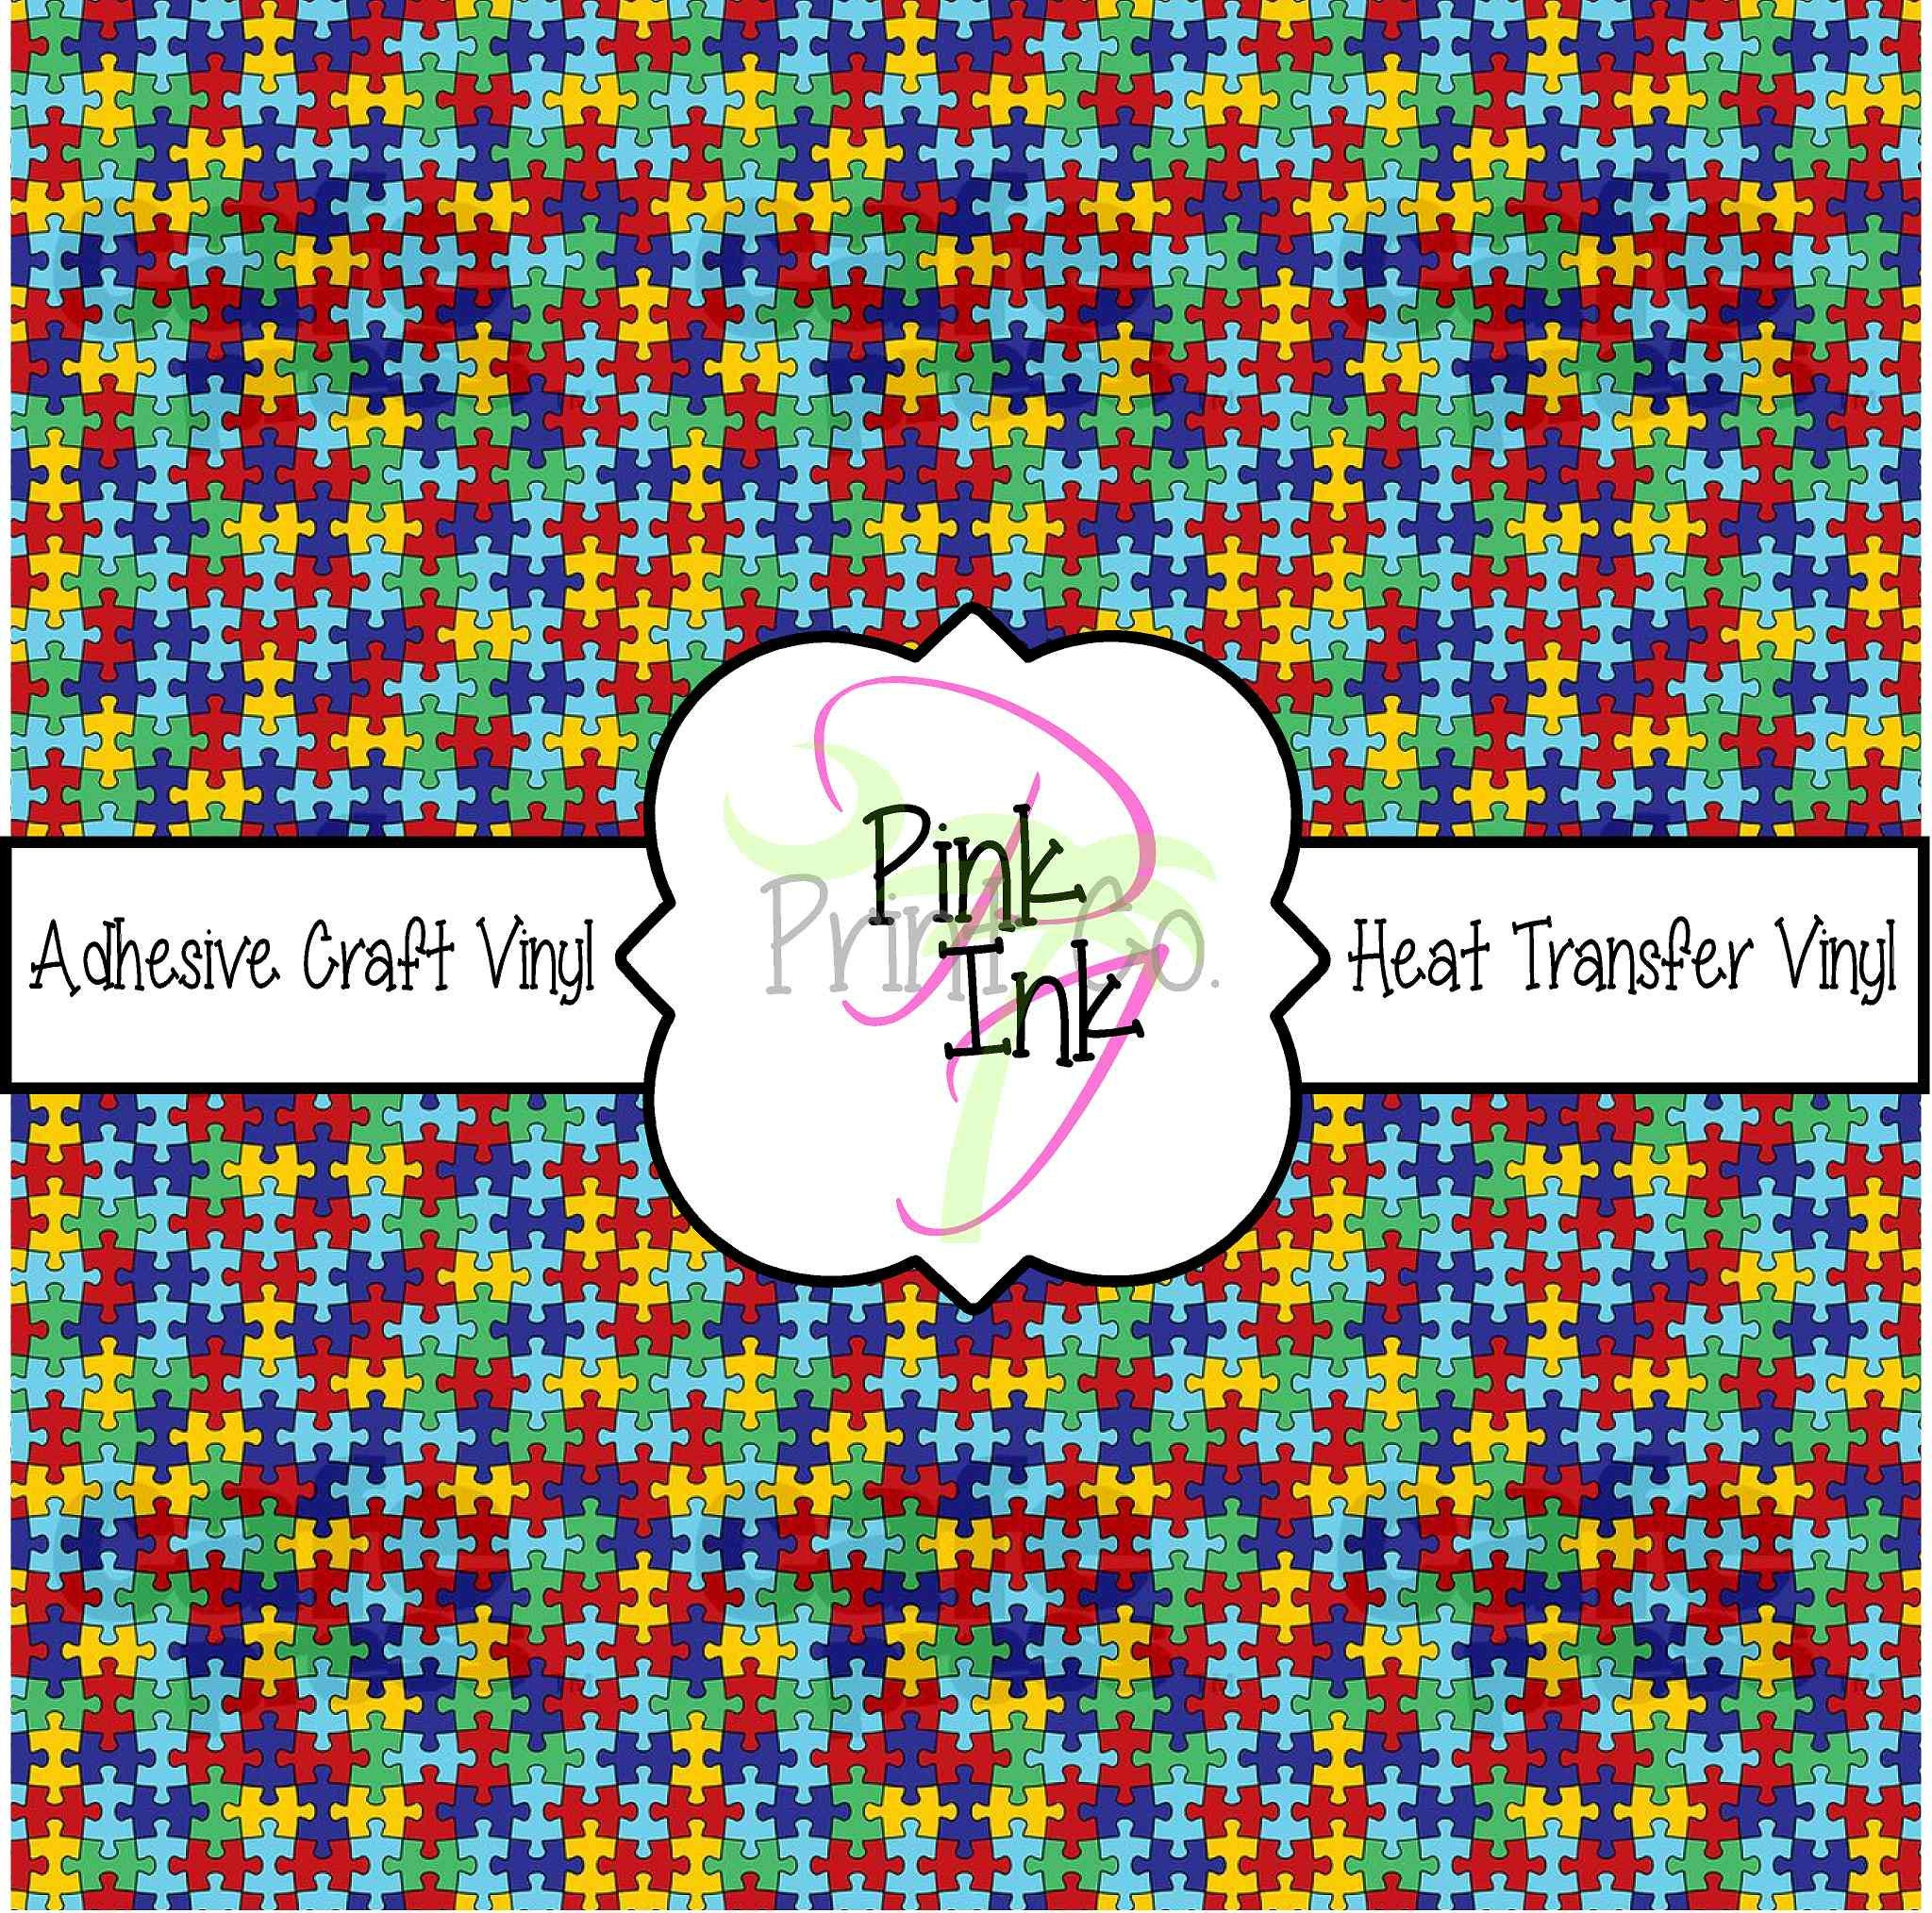 Autism Puzzle Printed Vinyl Hot Pink Patterned Adhesive Vinyl | Etsy - Puzzle Print Vinyl